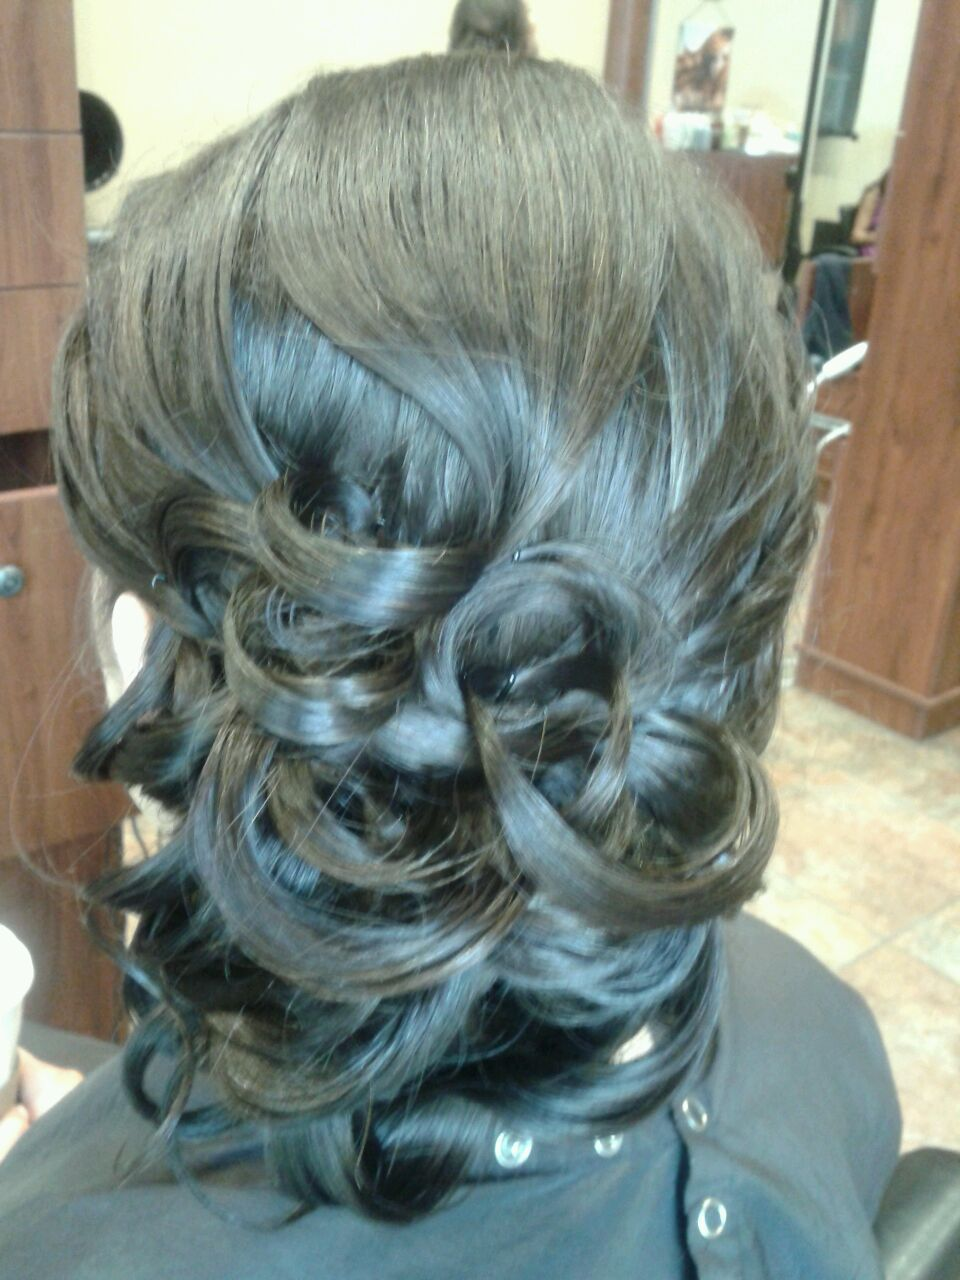 Tara lee does amazing and elegant formal styles salon guy finds